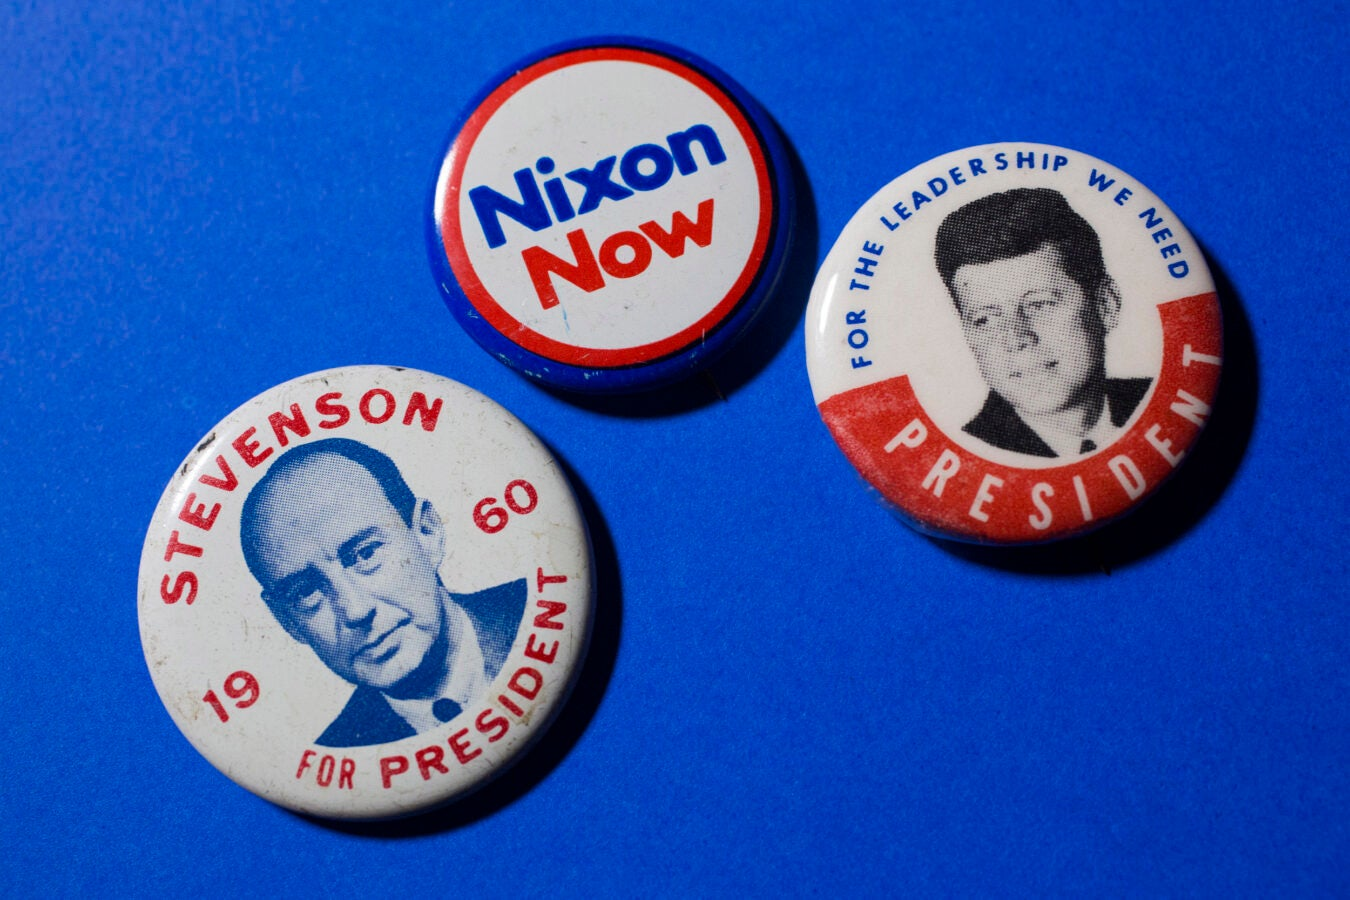 Adlai Stevenson, Richard Nixon, and John F. Kennedy represent three candidates from the 1960 presidential election.